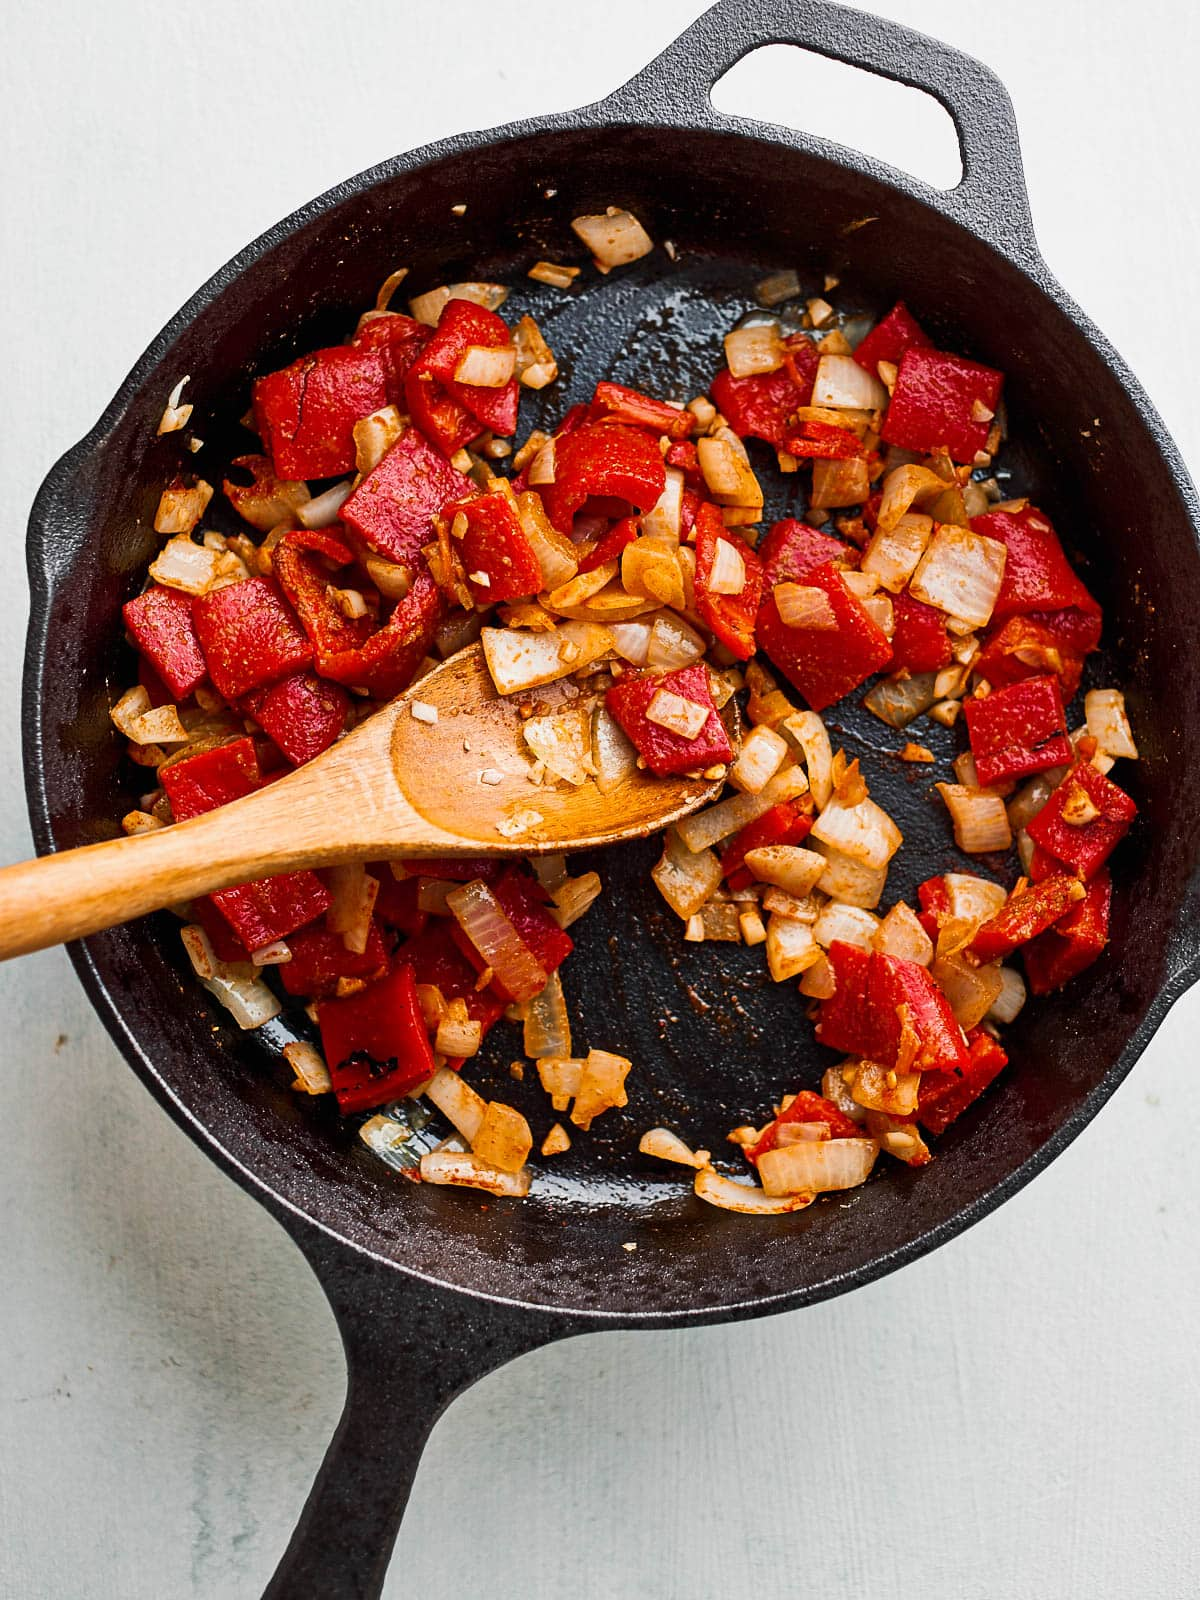 Frying off the spices, onion and pepper